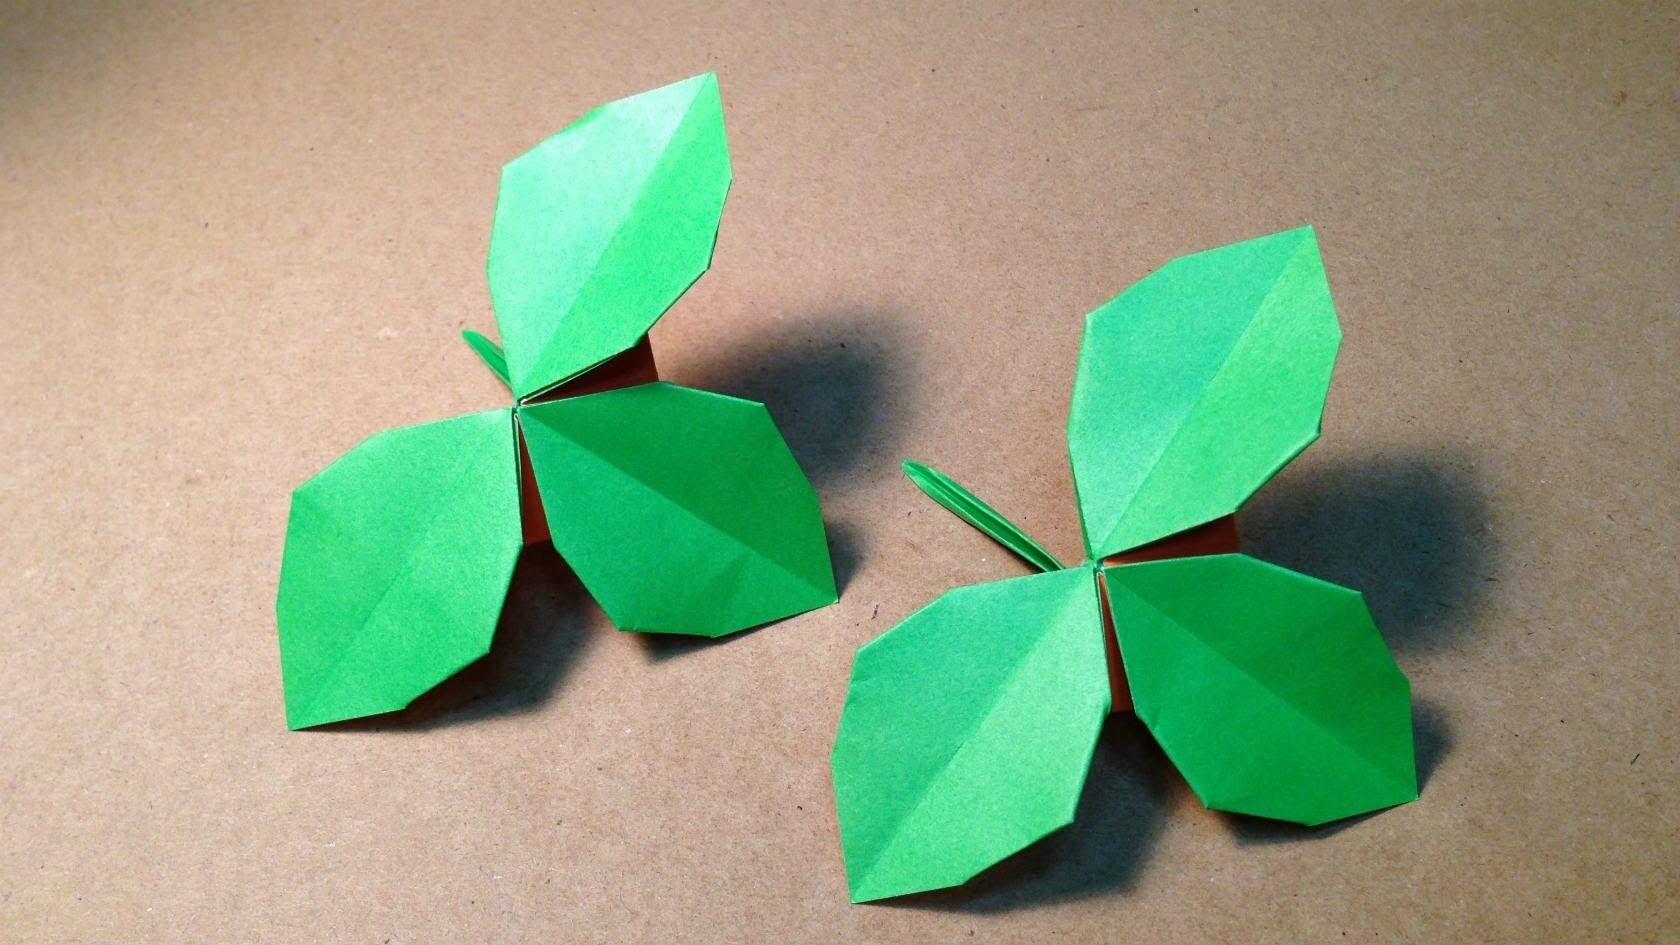 Origami Leaves Roses Origami Pinterest Origami Leaves And Rose